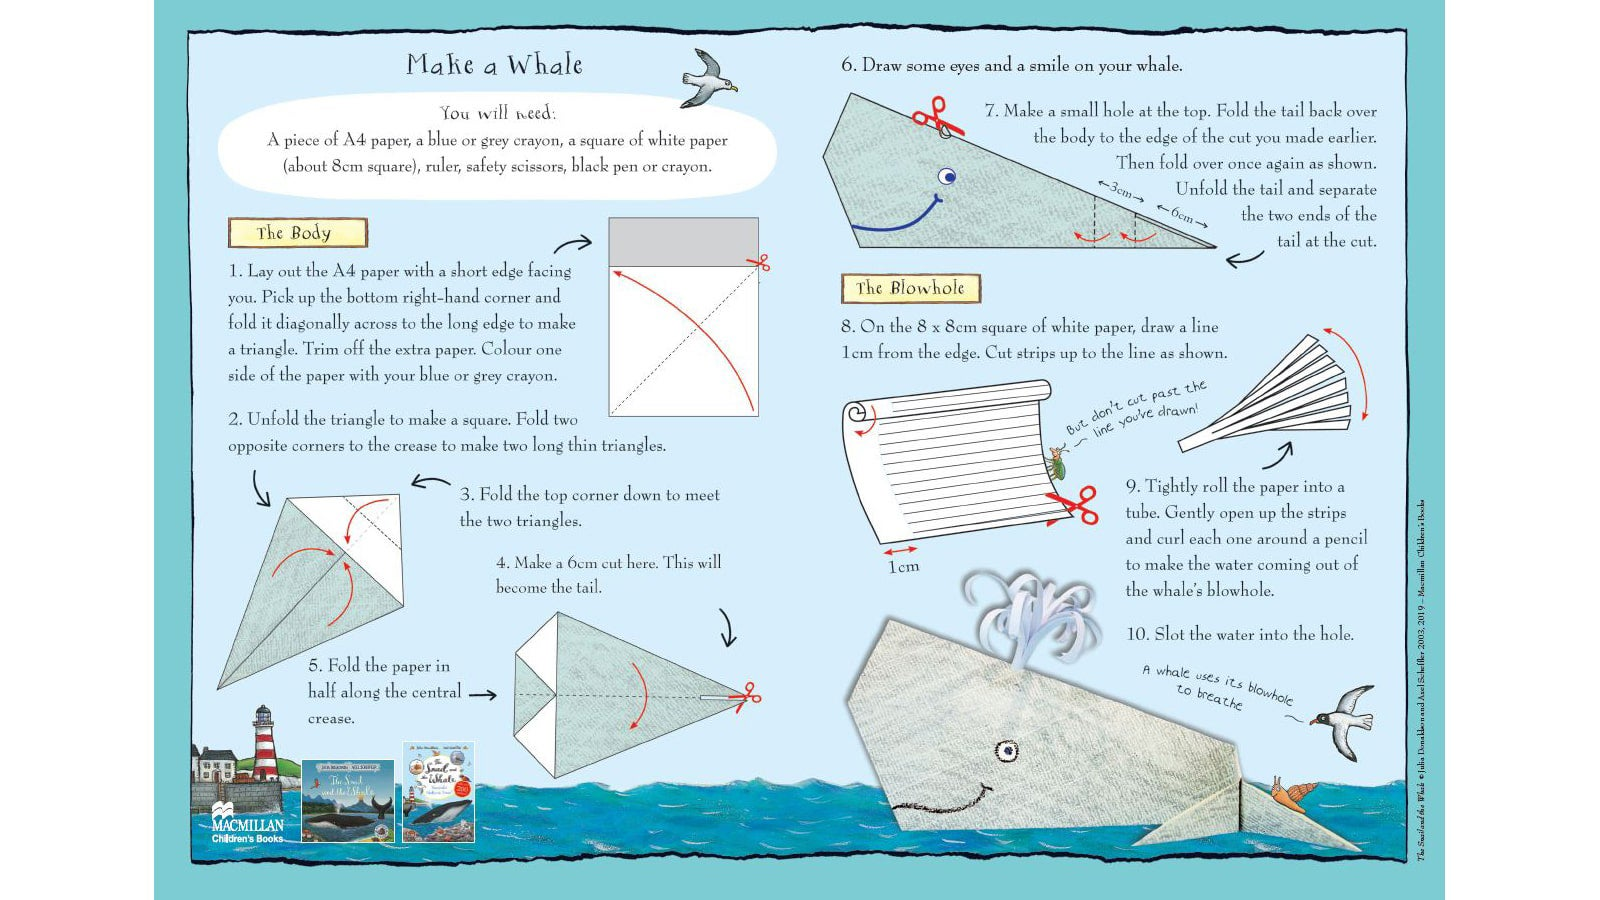 Activity sheet - Make a whale sheet  - The Snail and the Whale - Julia Donaldson - Axel Scheffler